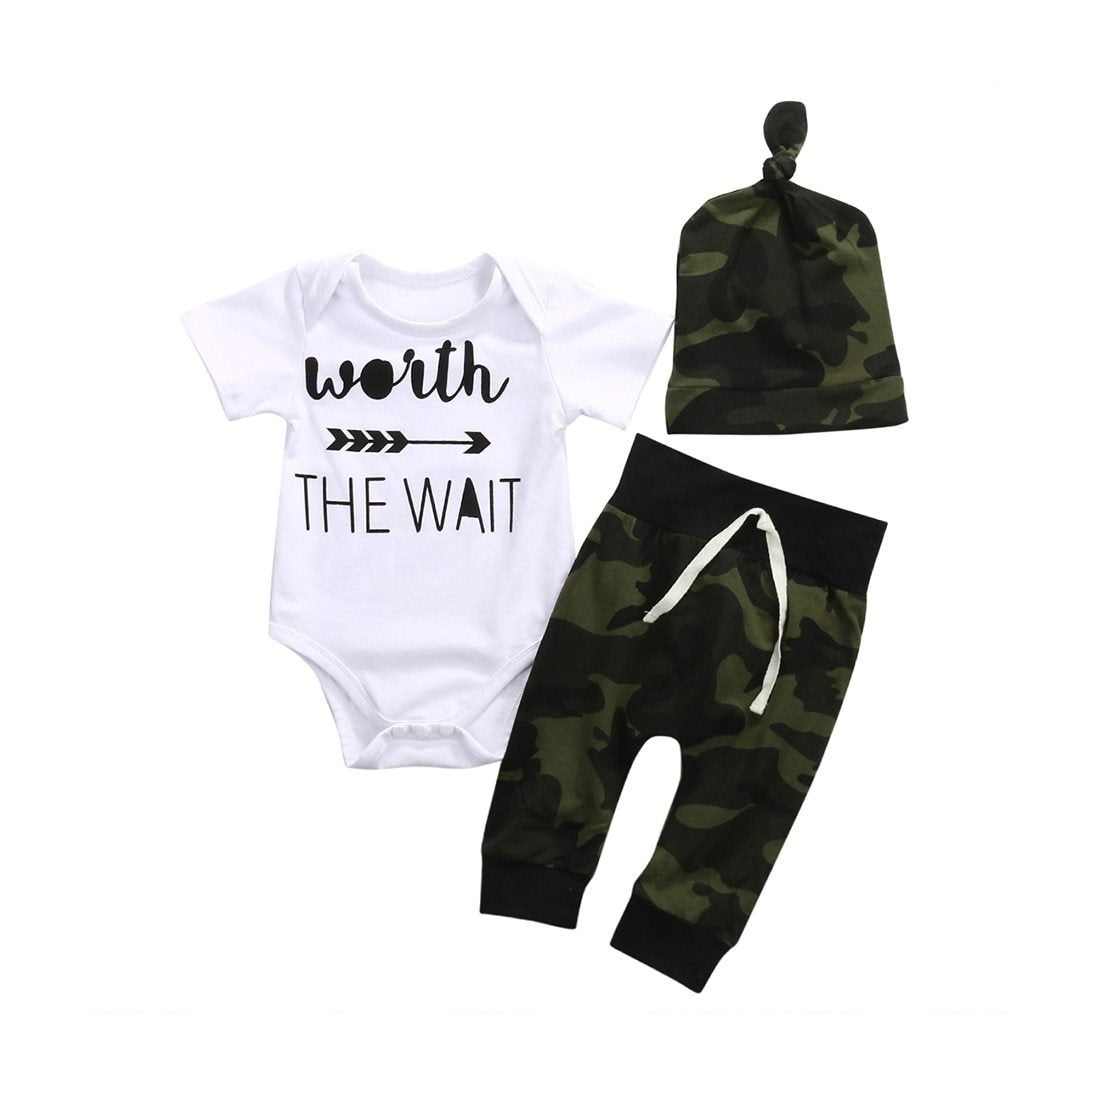 WORTH THE WAIT Cotton Romper Baby Boys Girls Clothes Outfit Short Sleevedresskily-dresskily